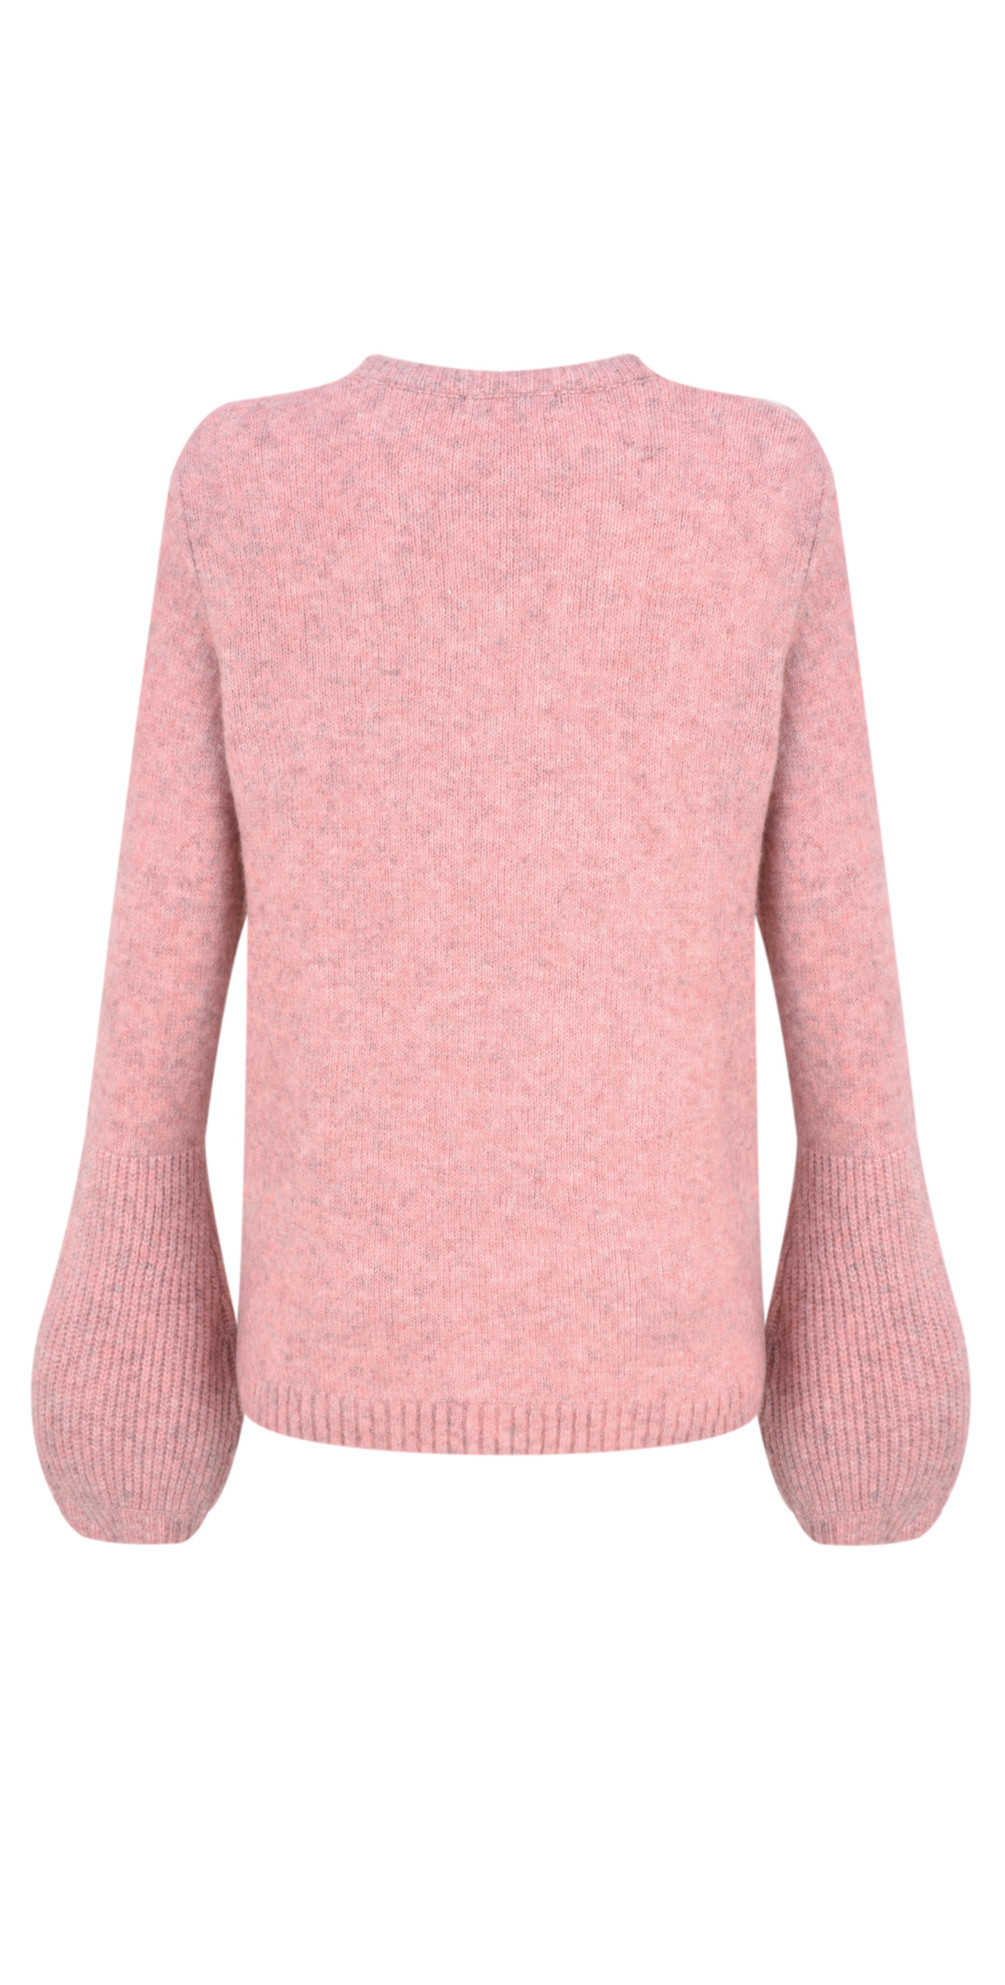 Bell Sleeve Wool Knit Jumper main image